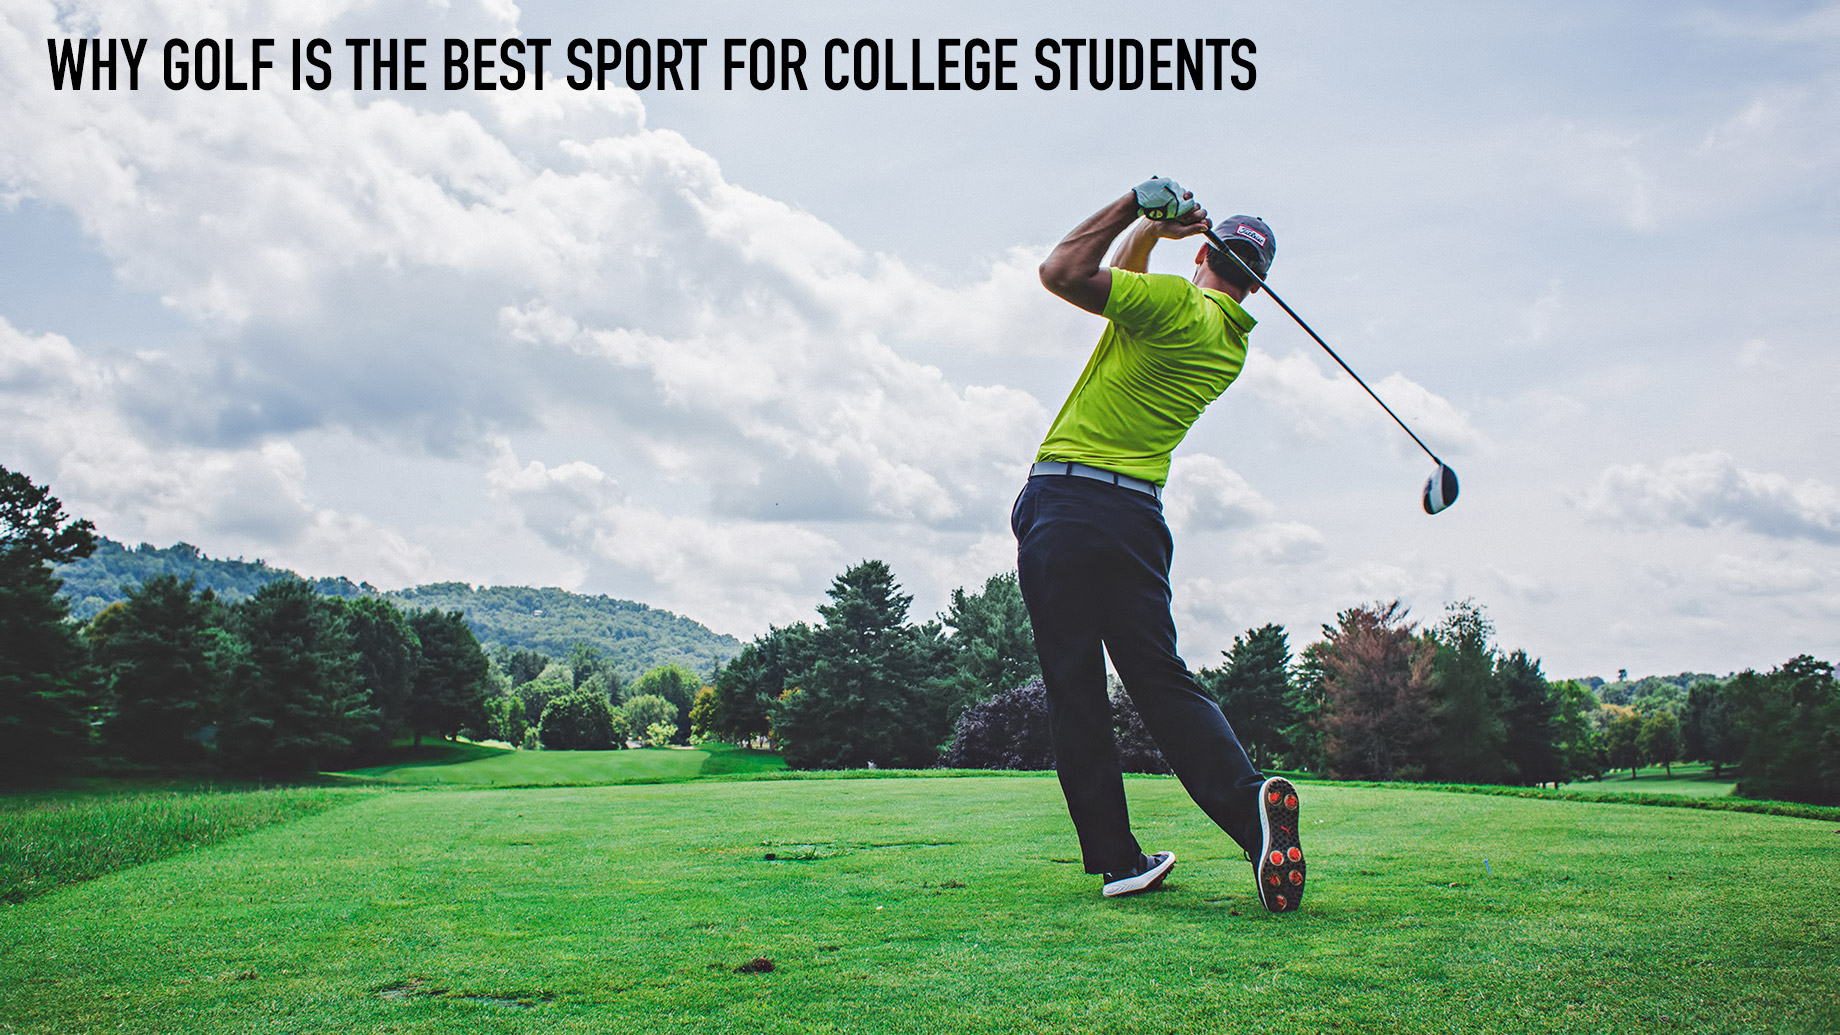 Why Golf is The Best Sport for College Students